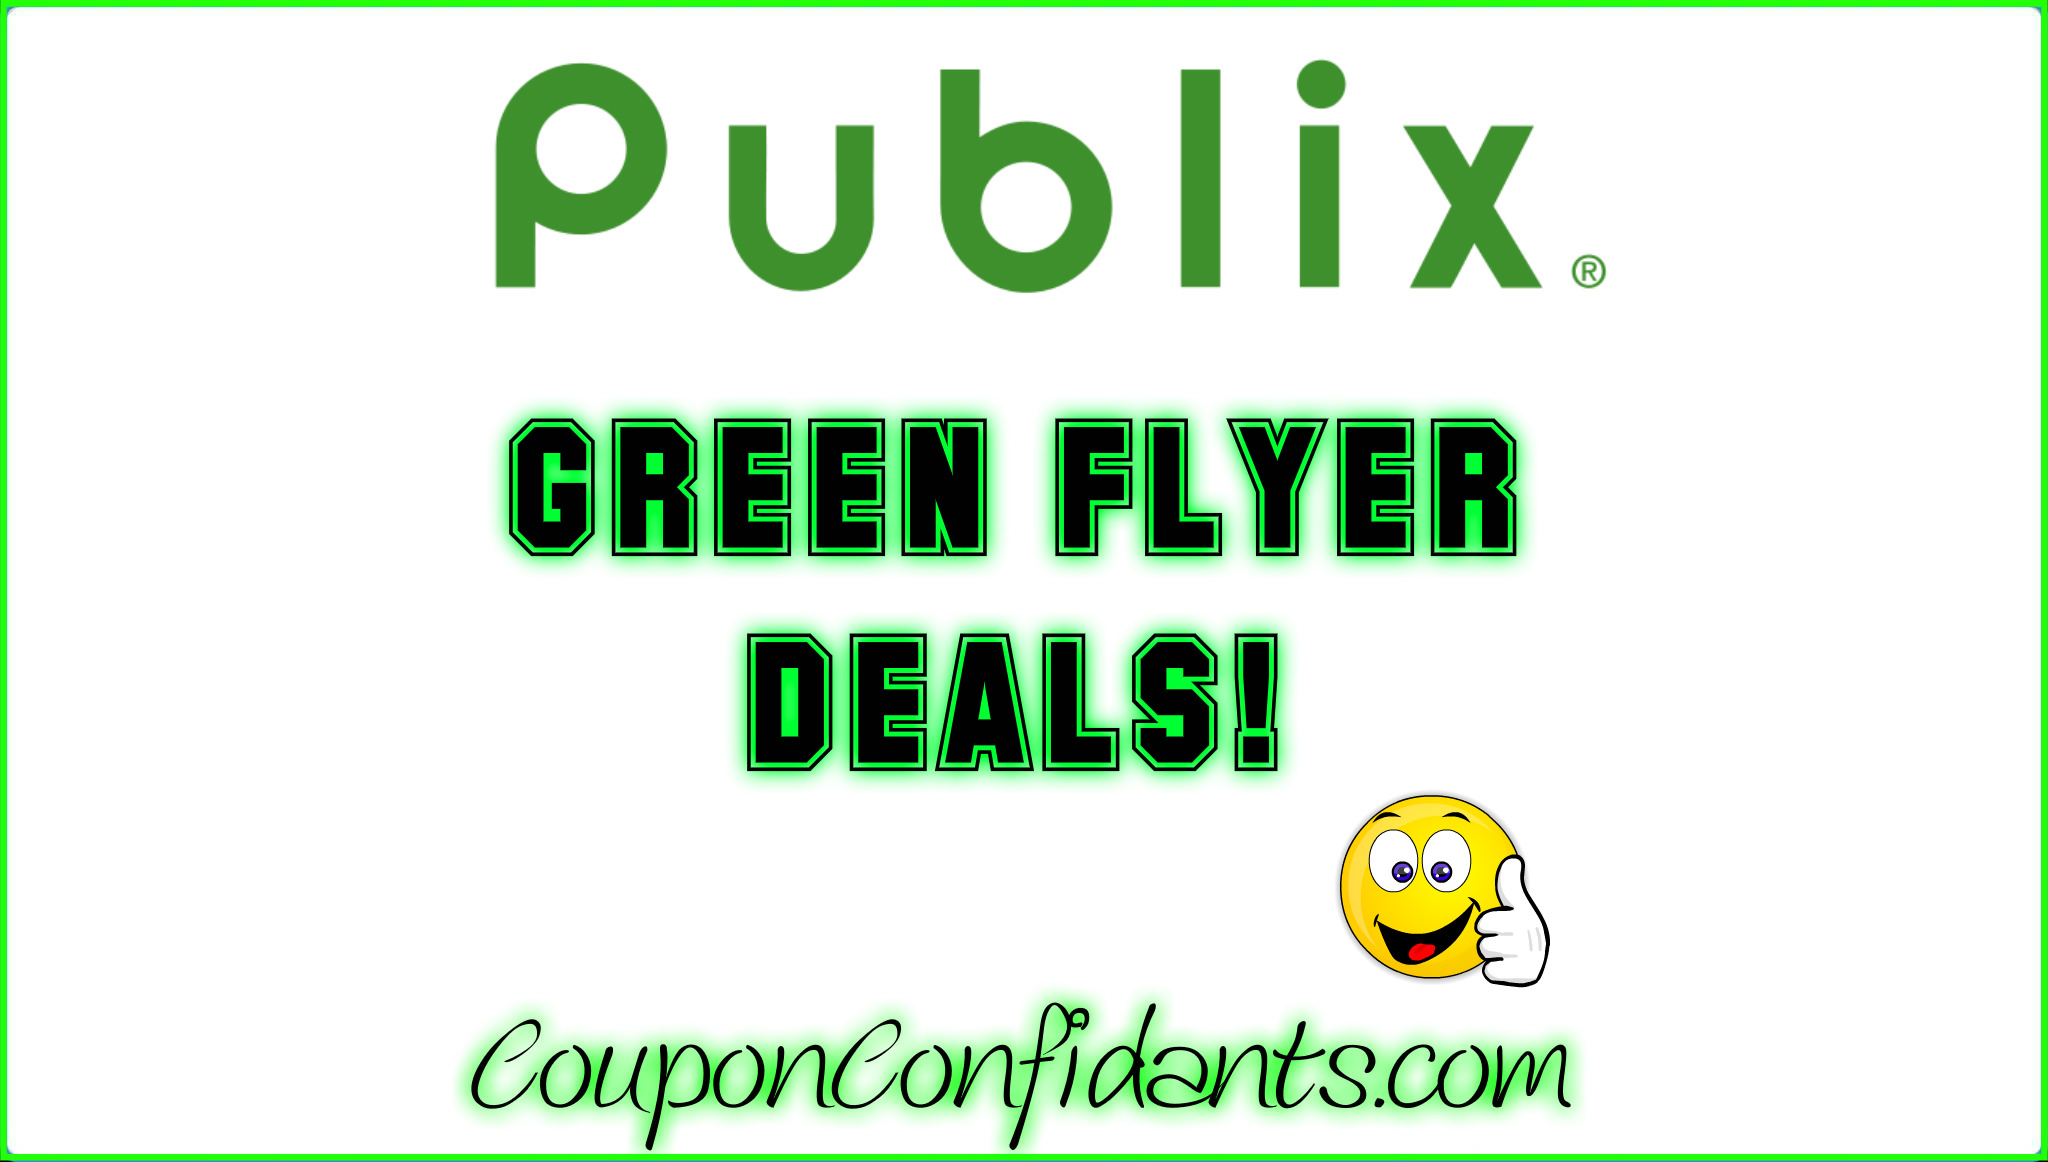 Publix Green Flyer Best Deals! 5/13 - 6/2